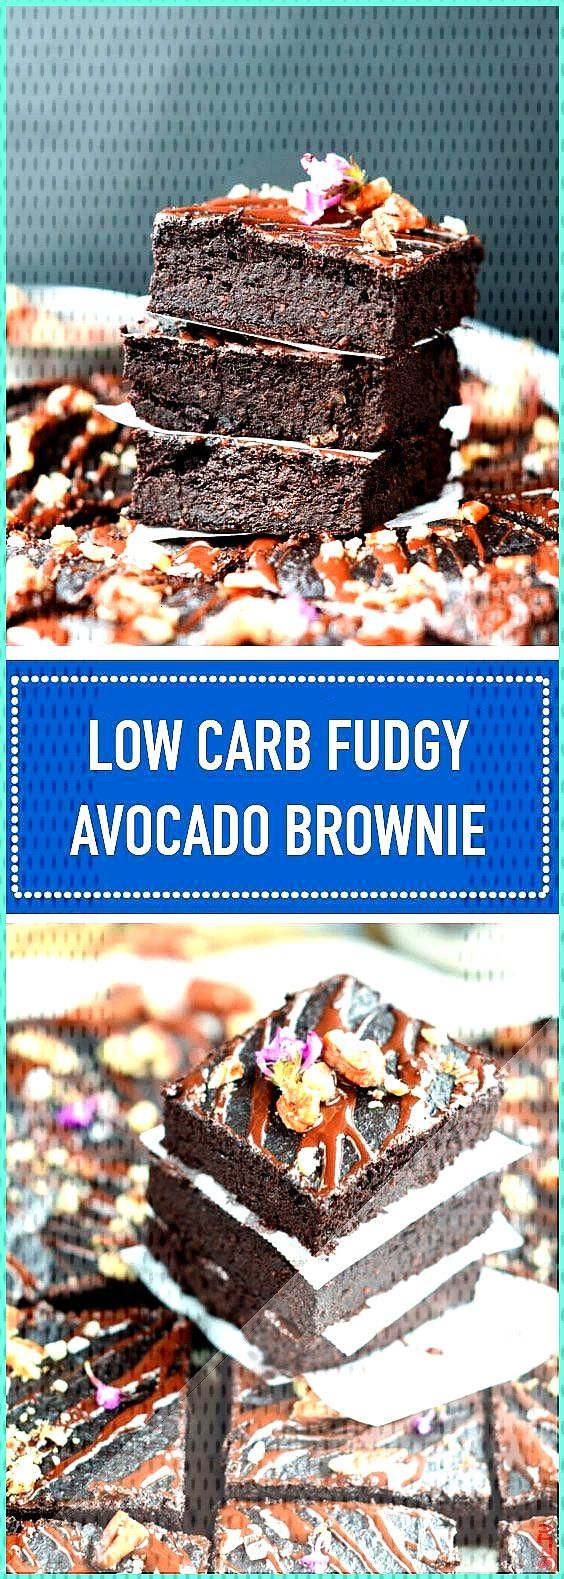 Low Carb Fudgy Avocado Brownies made of avocado are low carb Fudgy Avocado brownies with only 3 5 g